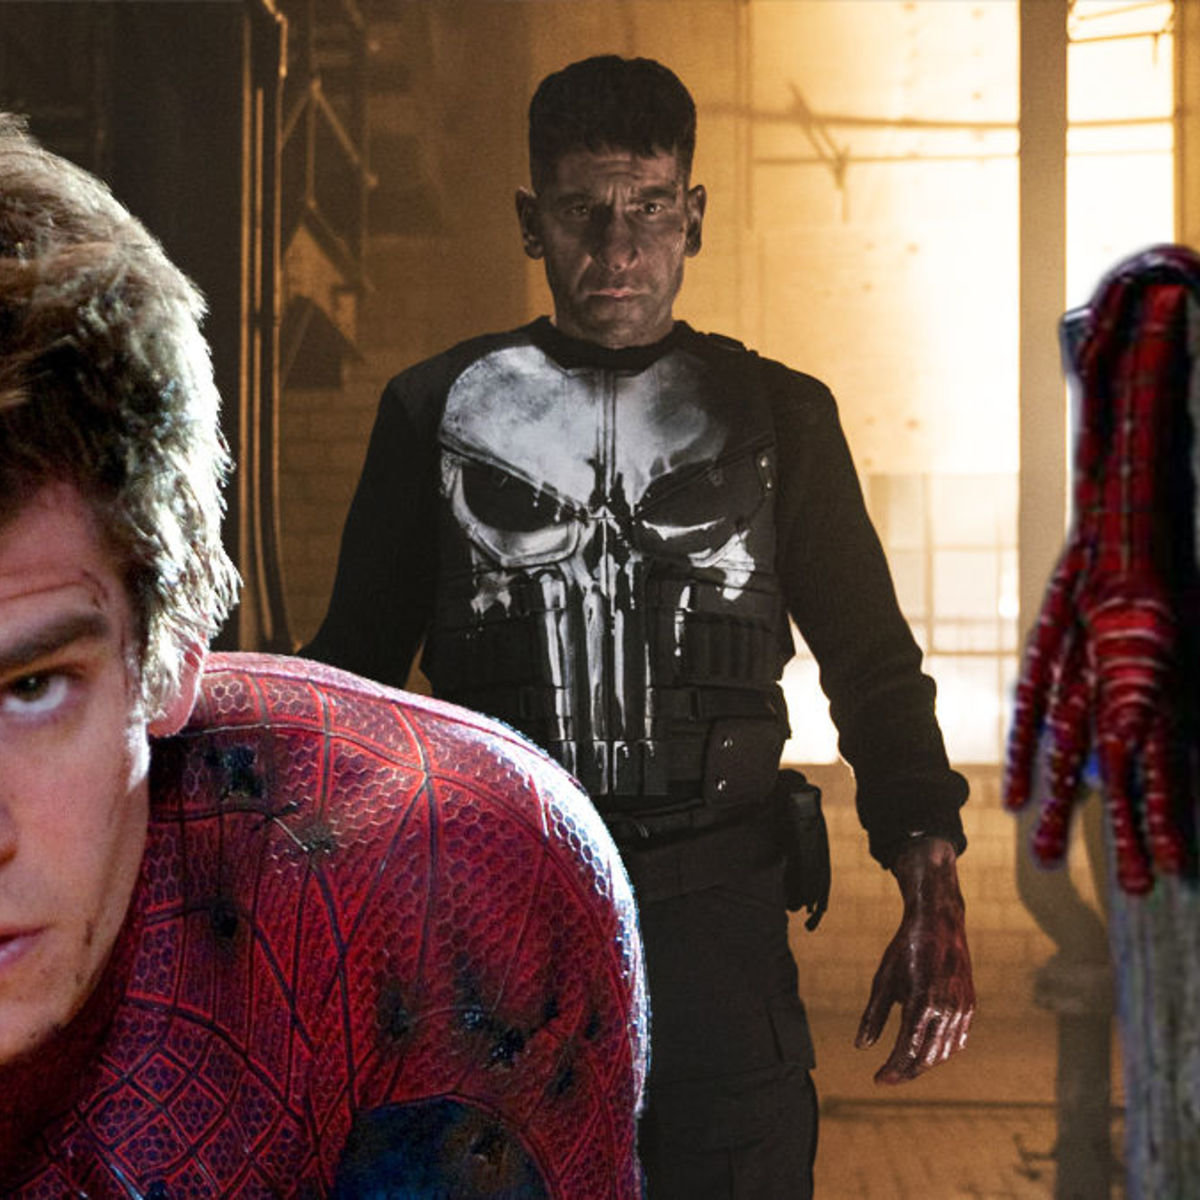 3D-printing Spider-Man's movie costume is quite the complicated